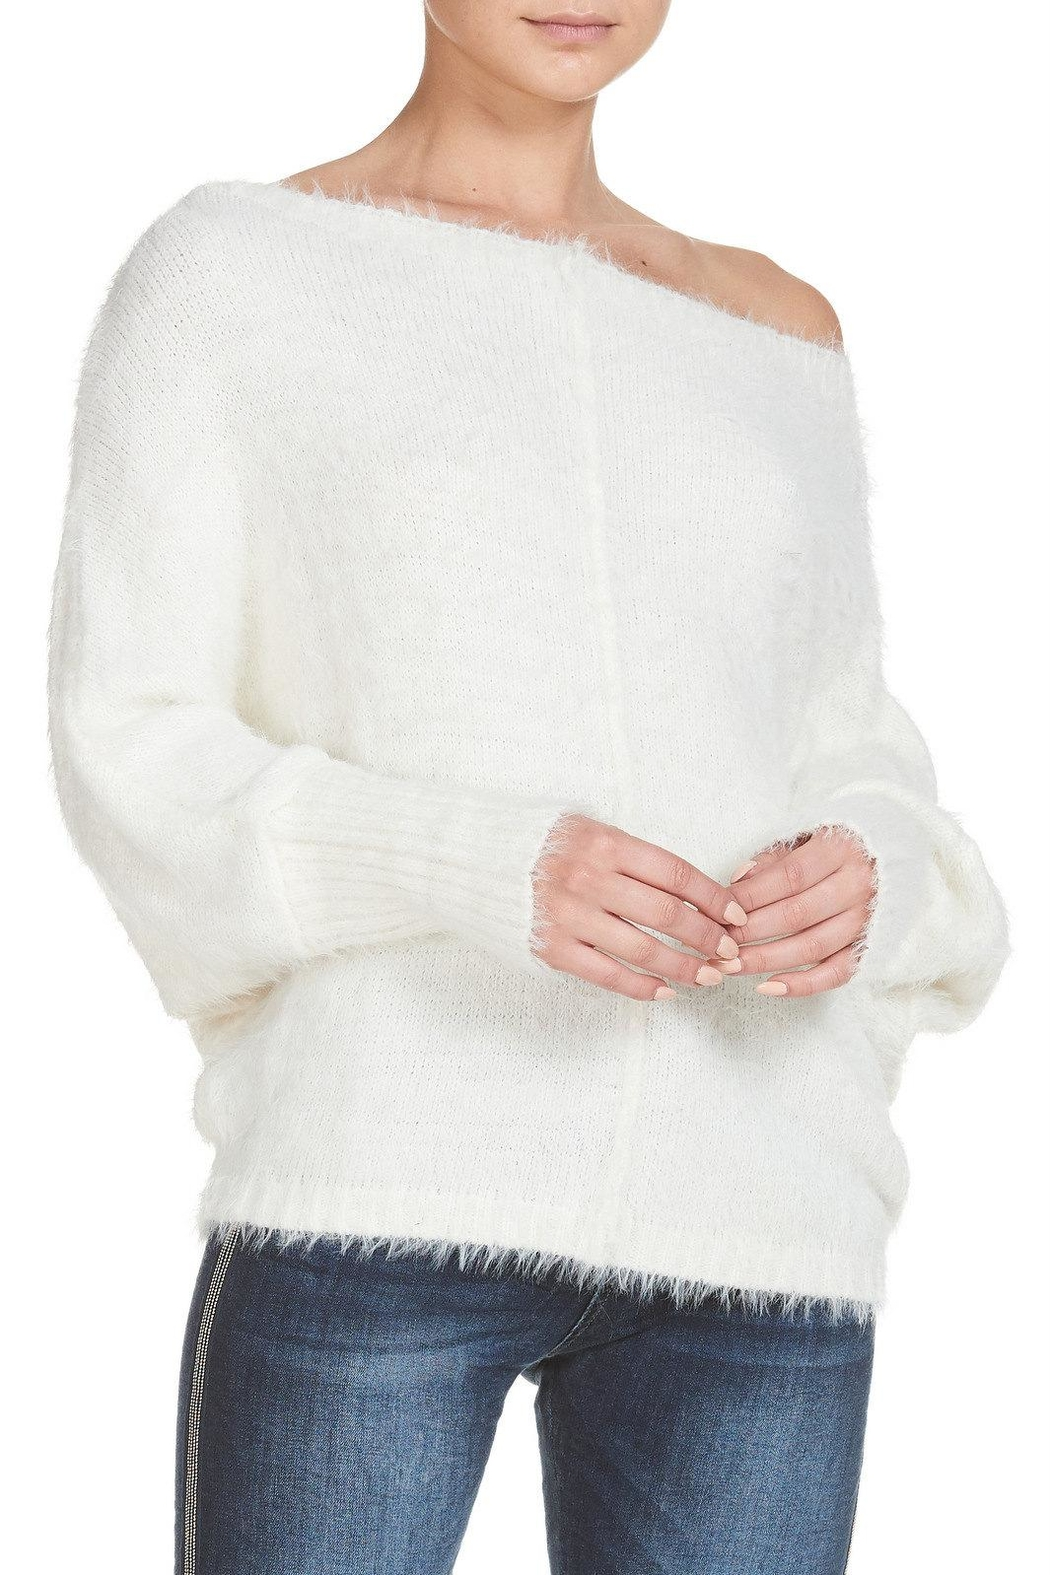 Elan Brush Knit Sweater - Main Image